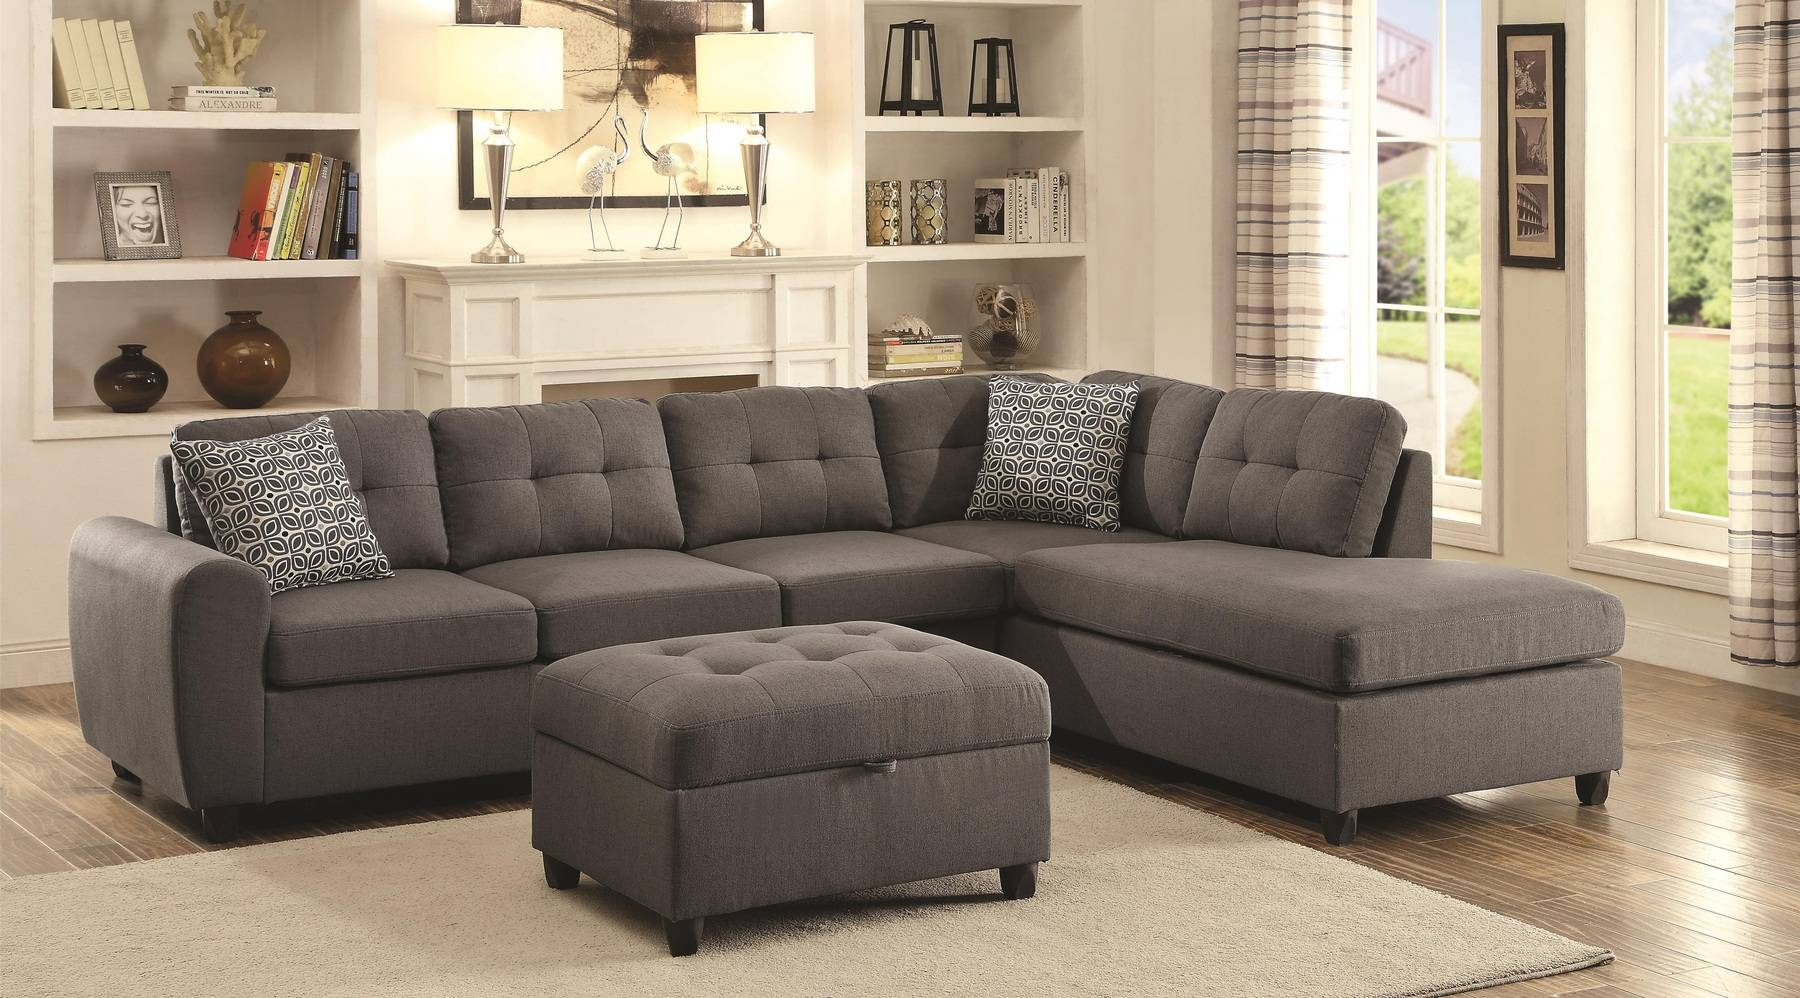 Stonenesse Sectional Sofa 500413 Coaster Furniture Sectional Sofas within Extra Wide Sectional Sofas (Image 29 of 30)